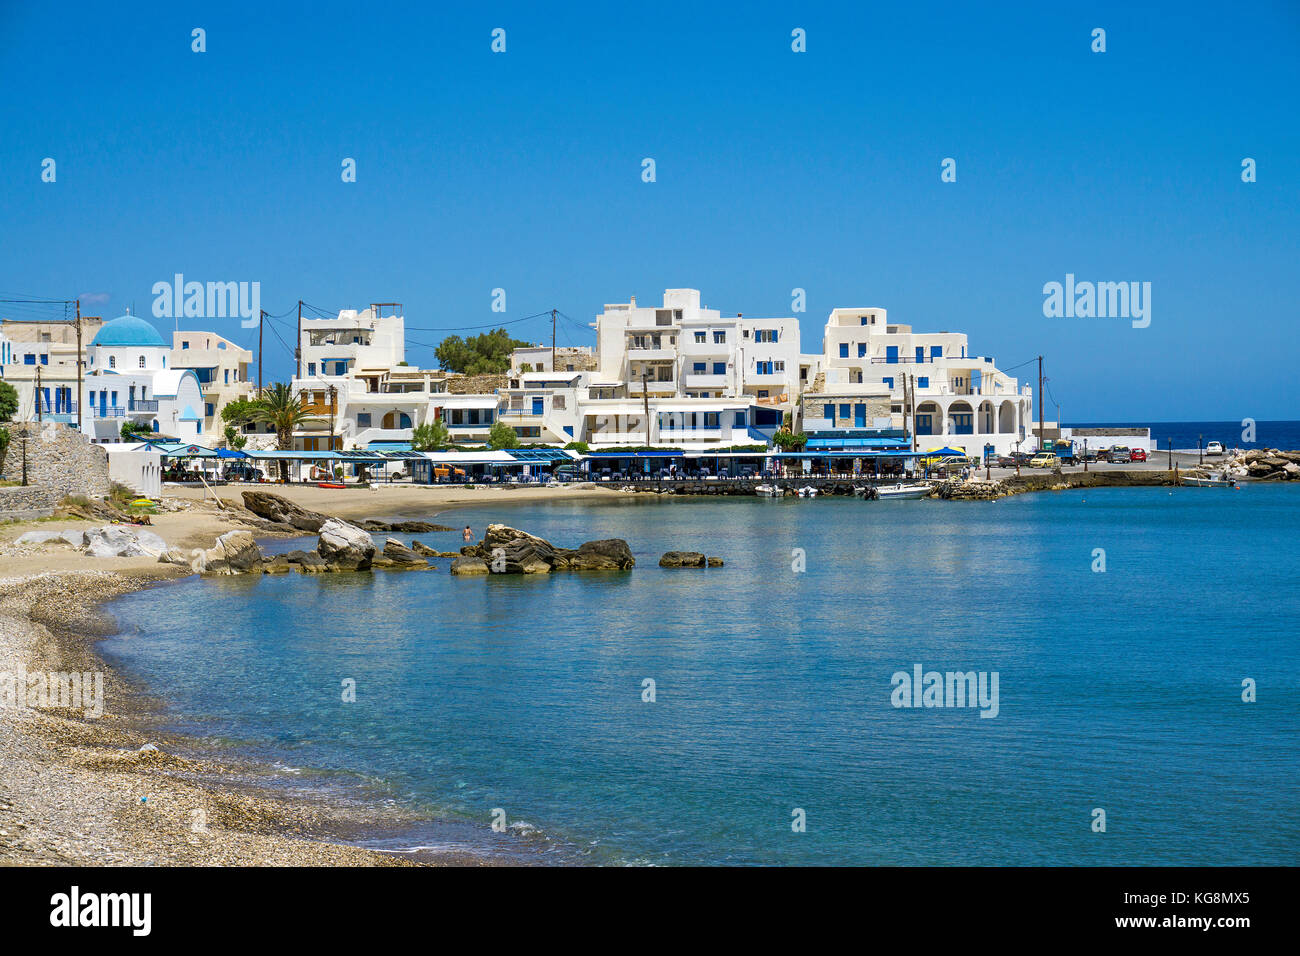 Beach and harbour of the small fishing village Apollonas, North side of Naxos island, Cyclades, Aegean, Greece - Stock Image